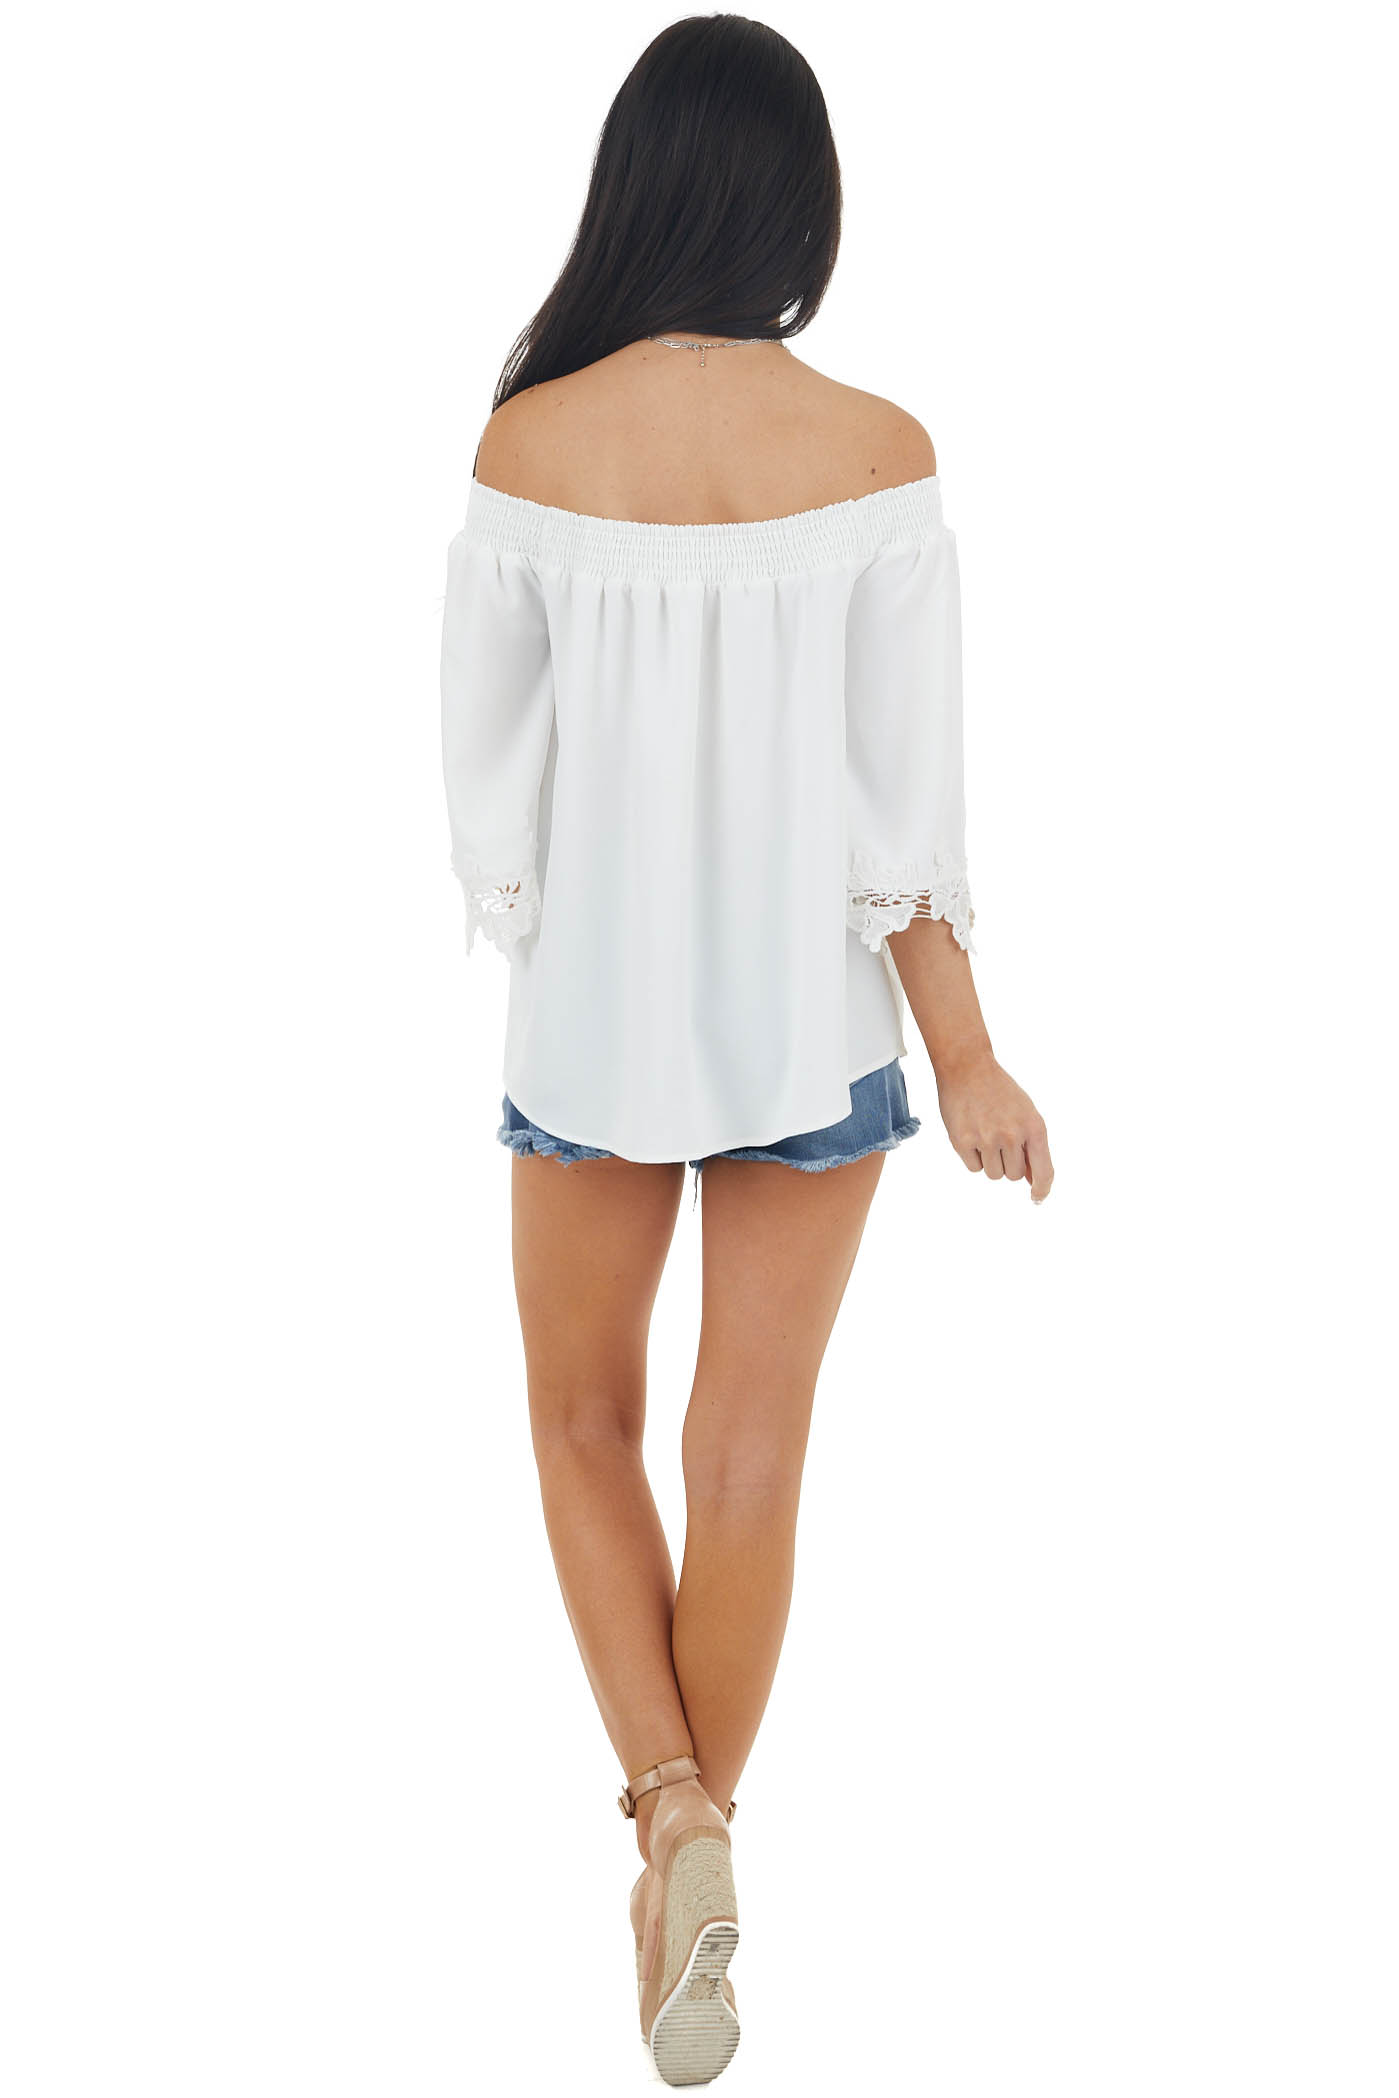 Pearl White Off the Shoulder Blouse with Lace Details